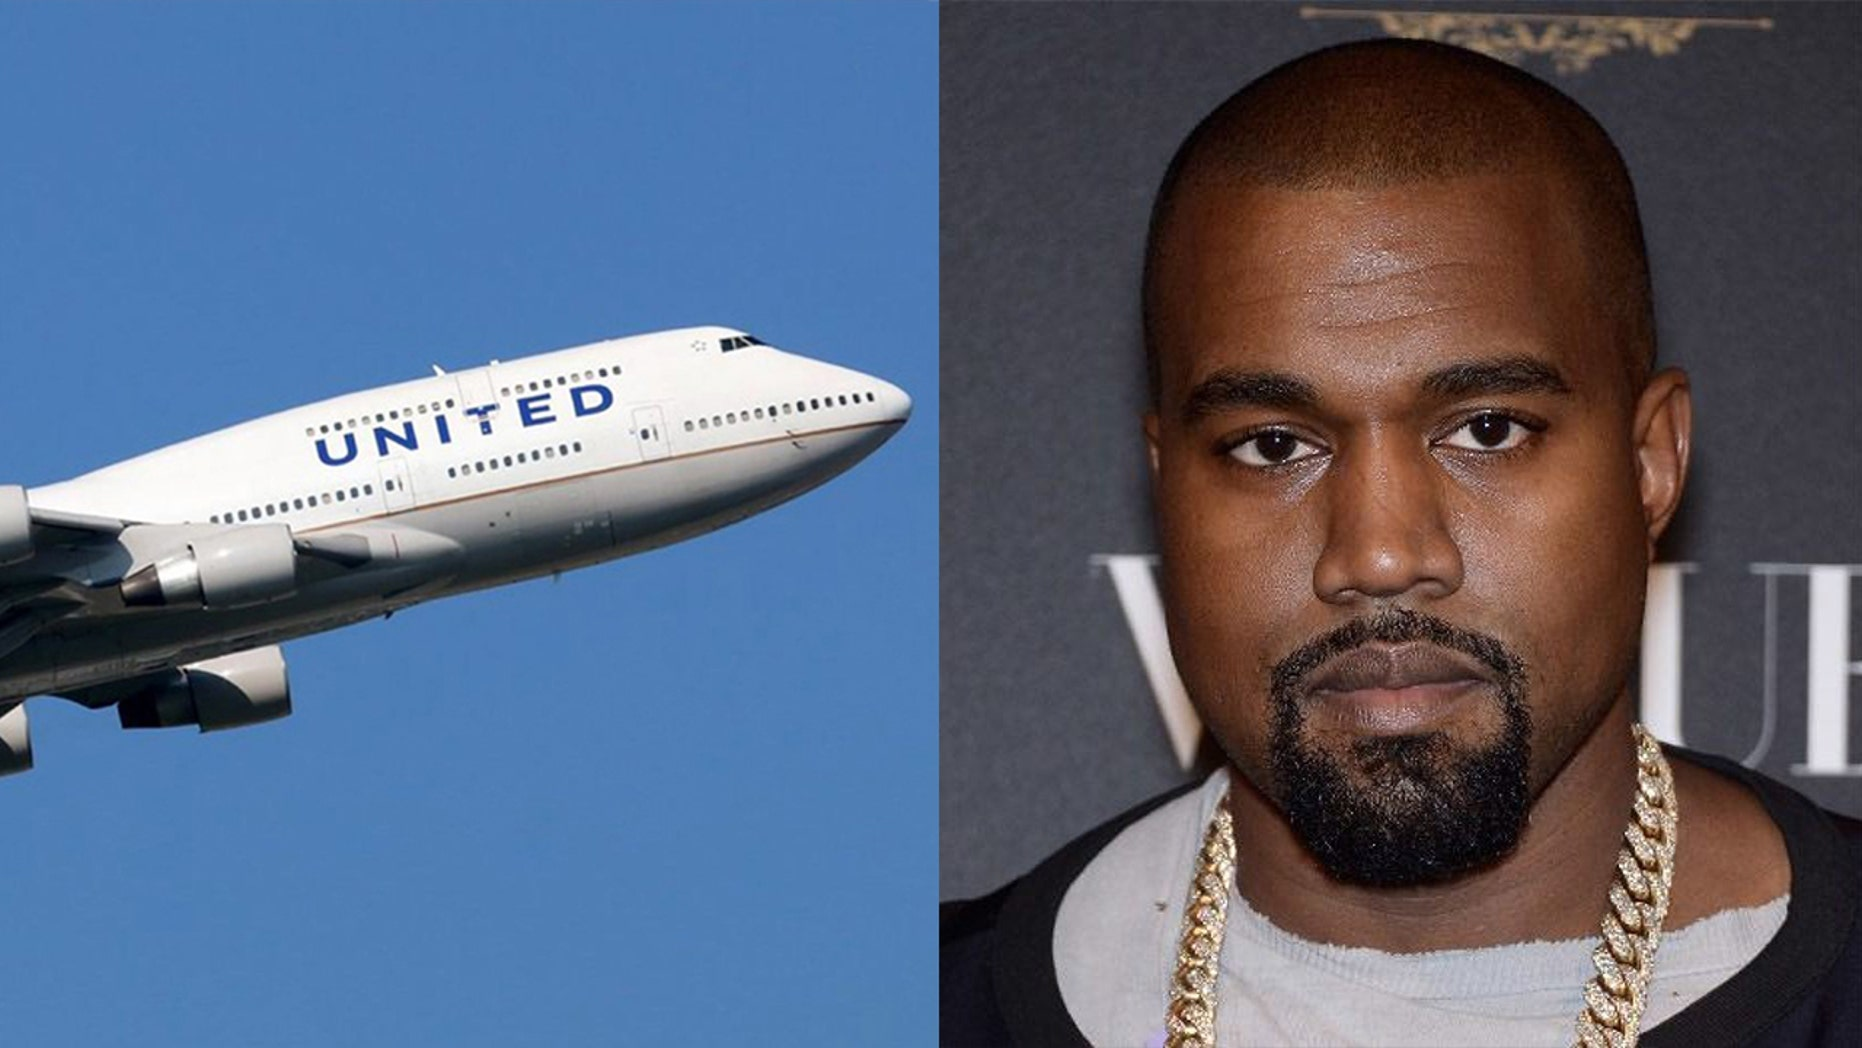 """No big deal just taking a private 747 this is how [Kanye] does it now. Only 747s. Private. I've never even heard of this but whatever,"" the rapper's wife Kim Kardashian said on Instagram."